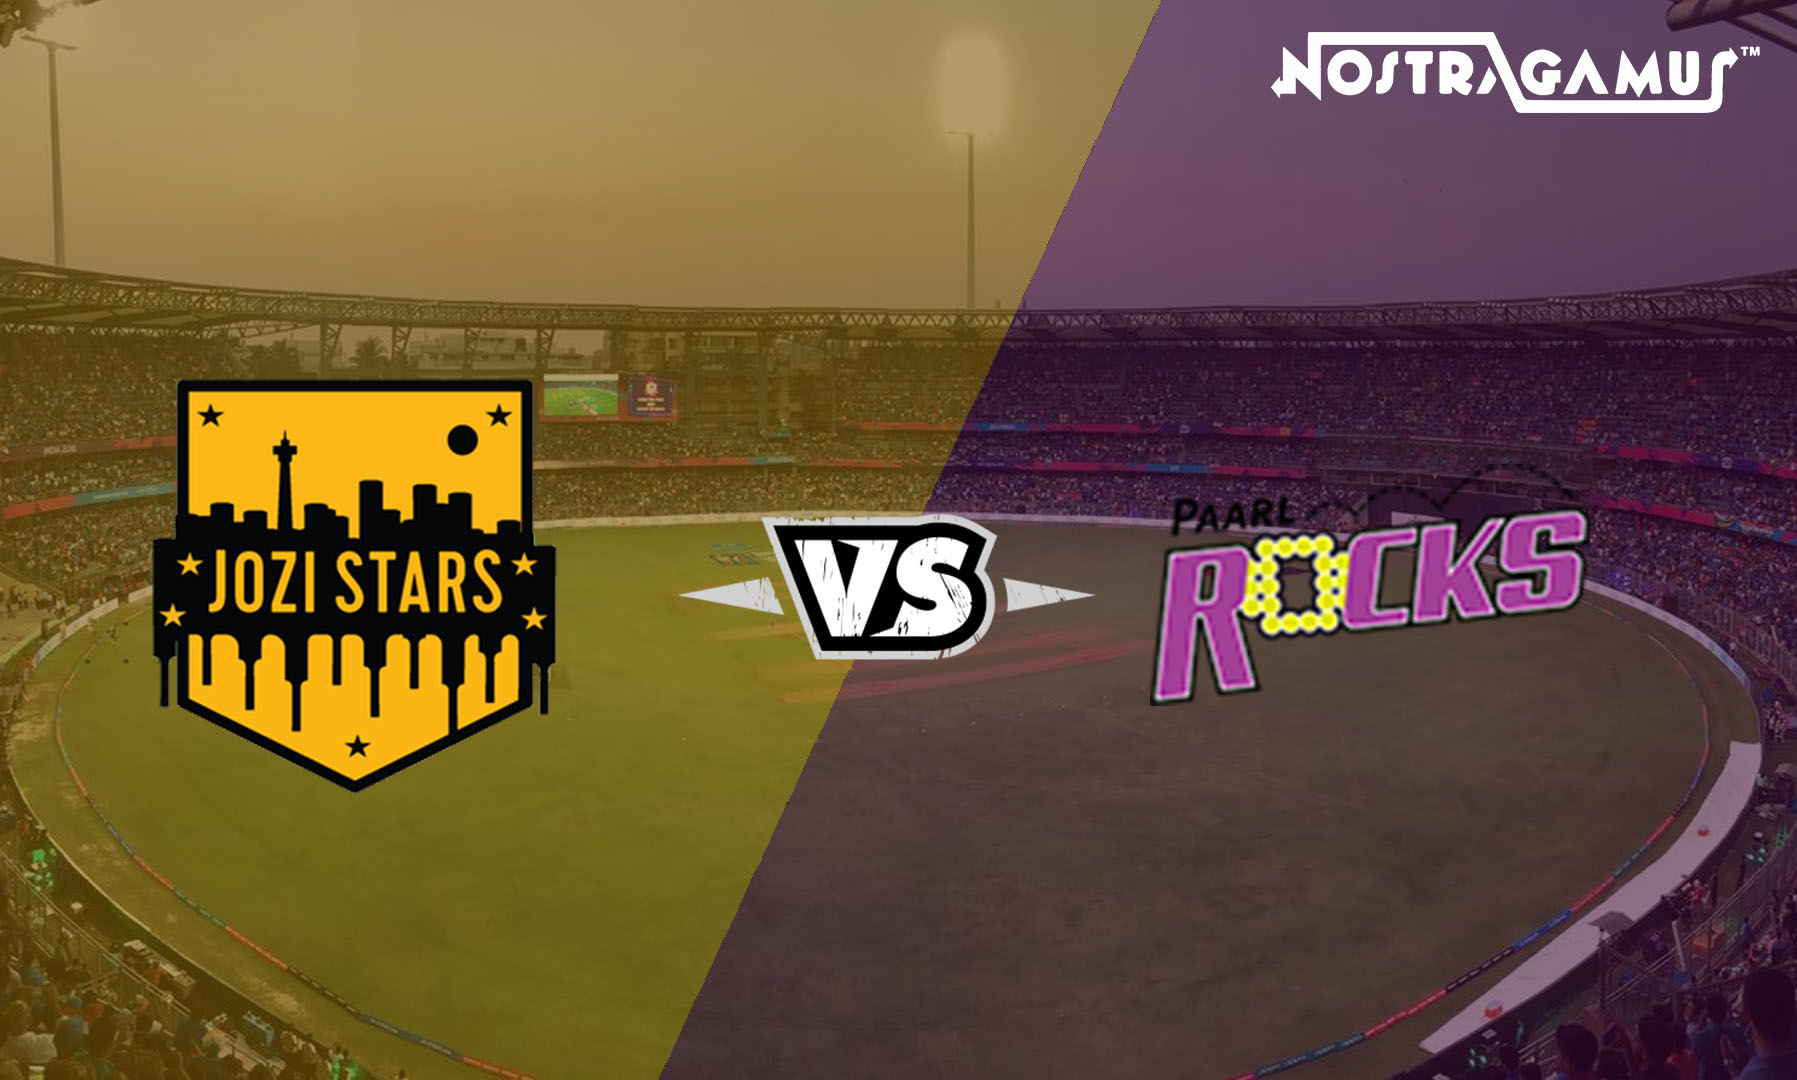 MSL 2019  Predictions: Jozi Stars vs Paarl Rocks